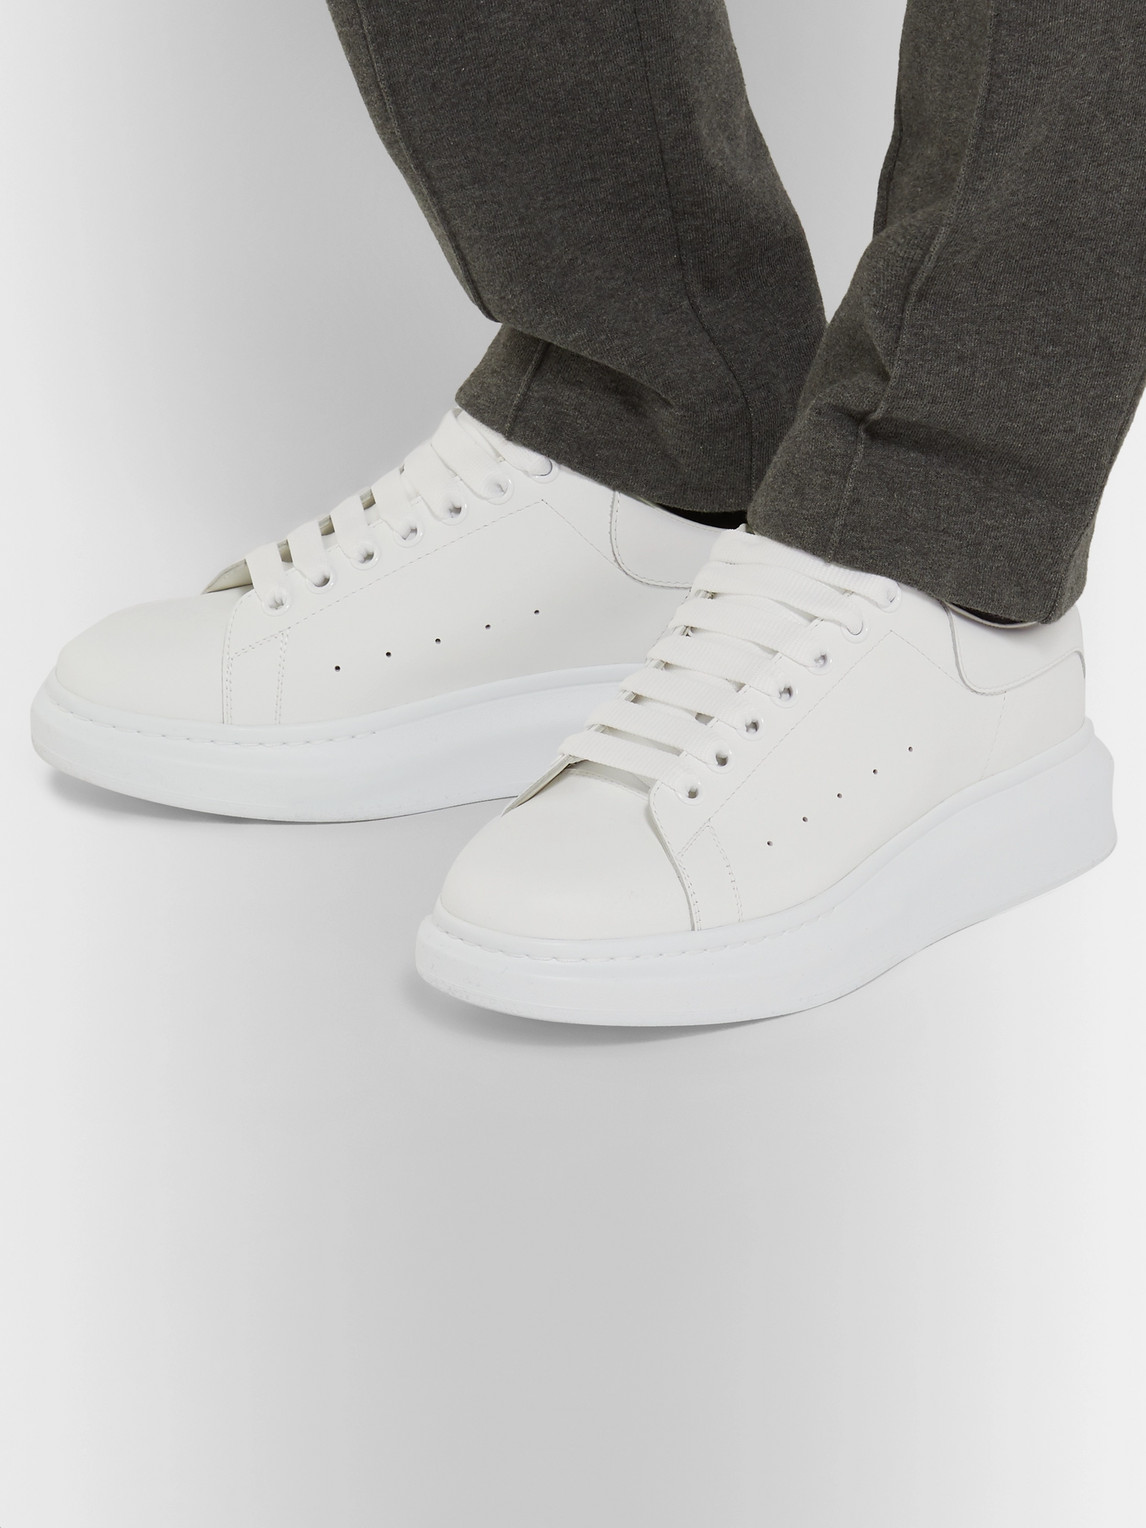 Alexander Mcqueen Sneakers EXAGGERATED-SOLE LEATHER SNEAKERS